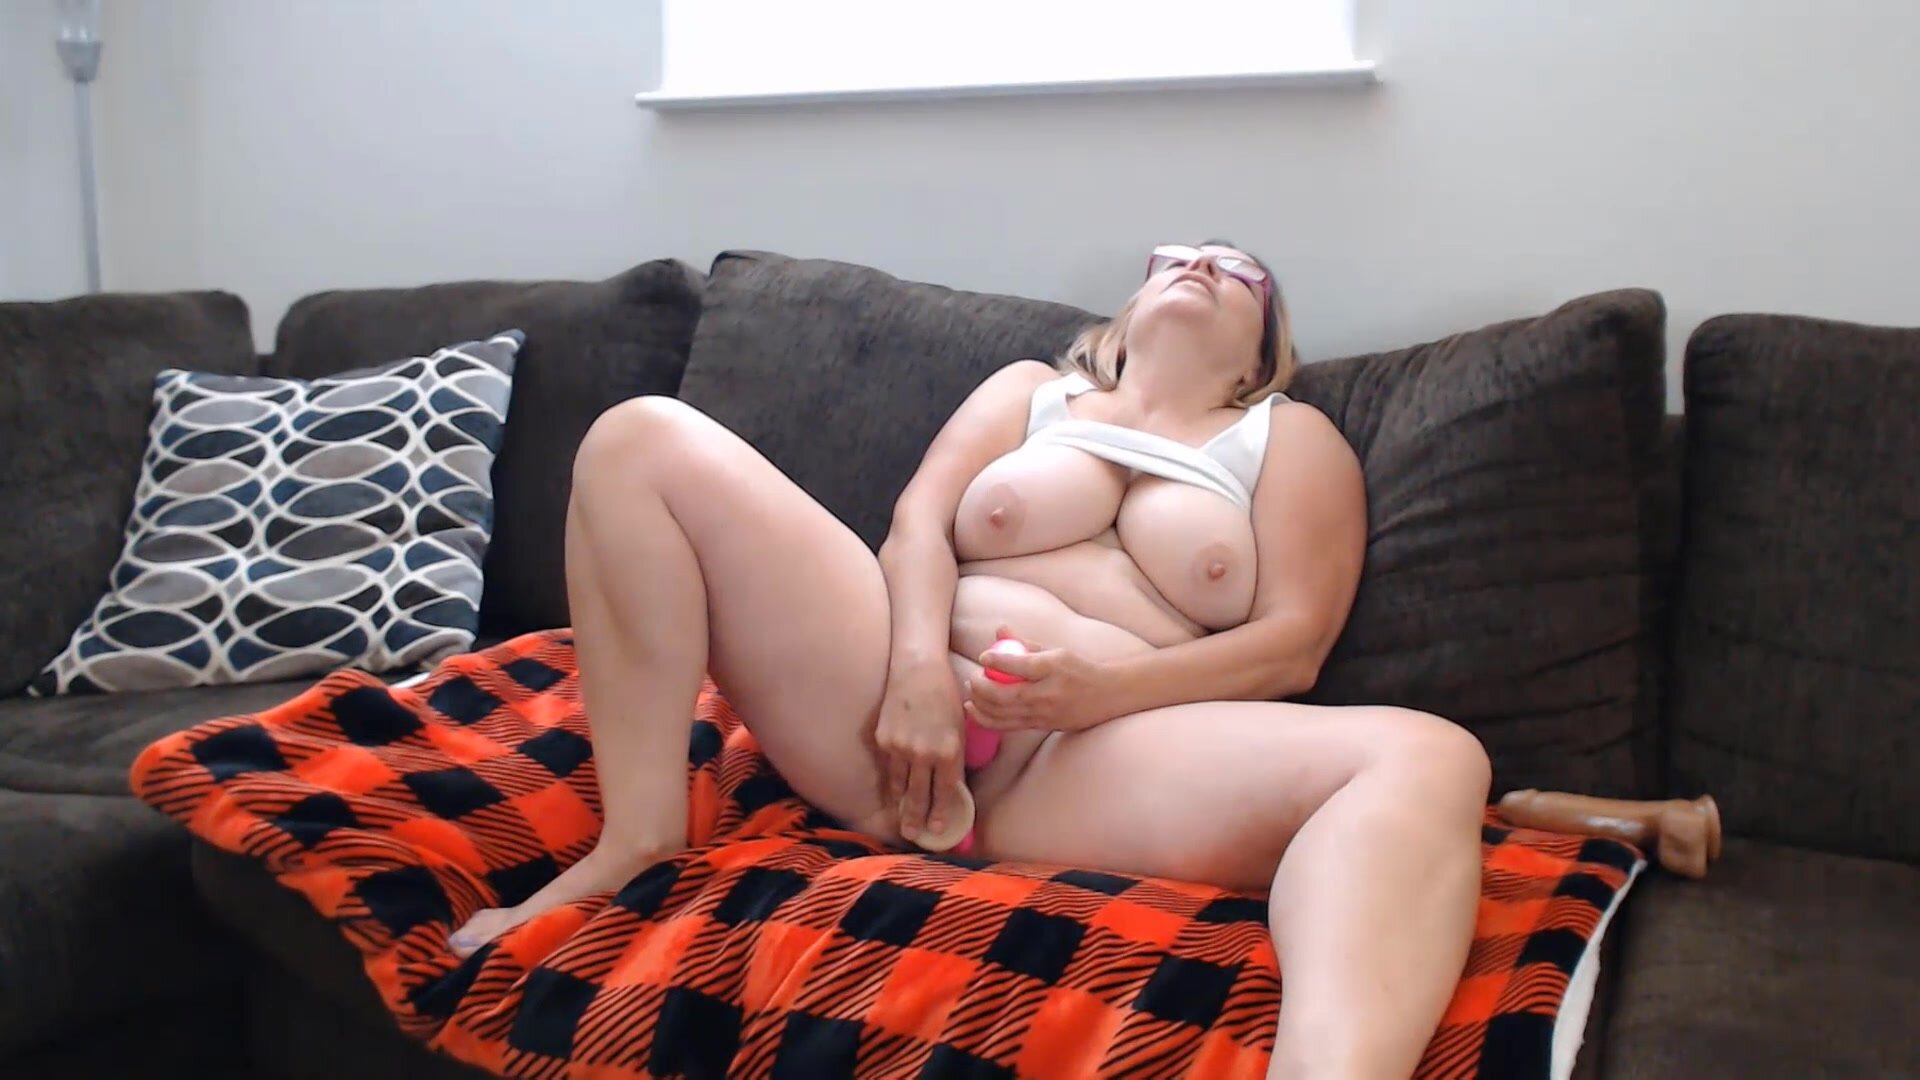 Mature MILF in glasses with huge natural tits and protruding nipples on livesexify.ne